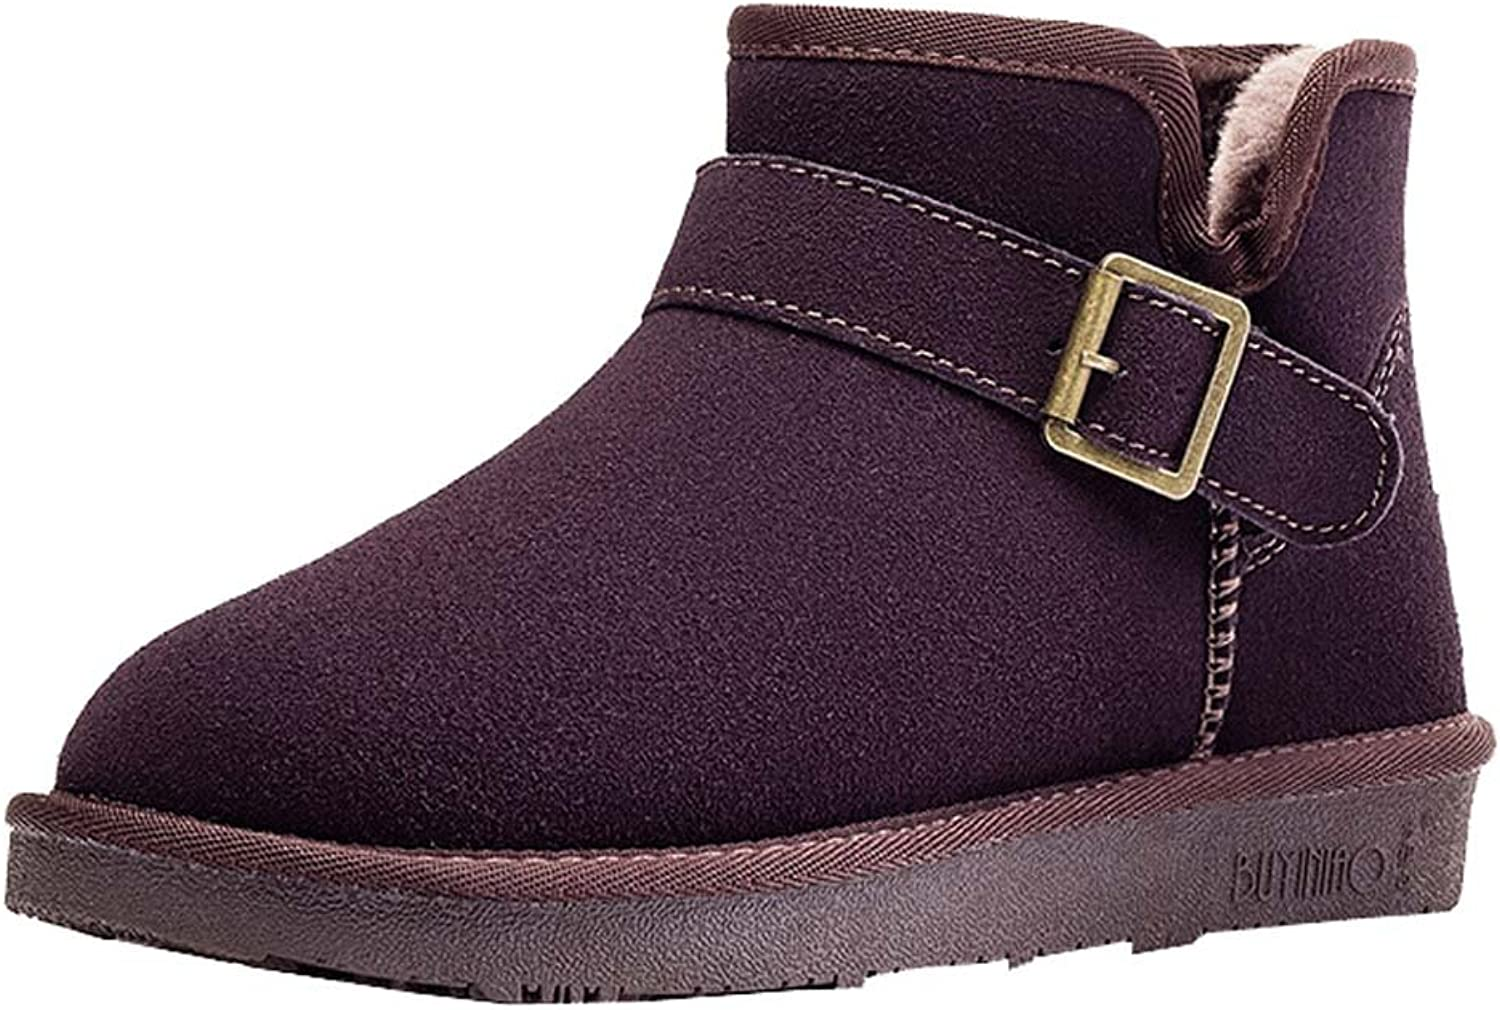 Women's leather snow boots warm casual snow cotton